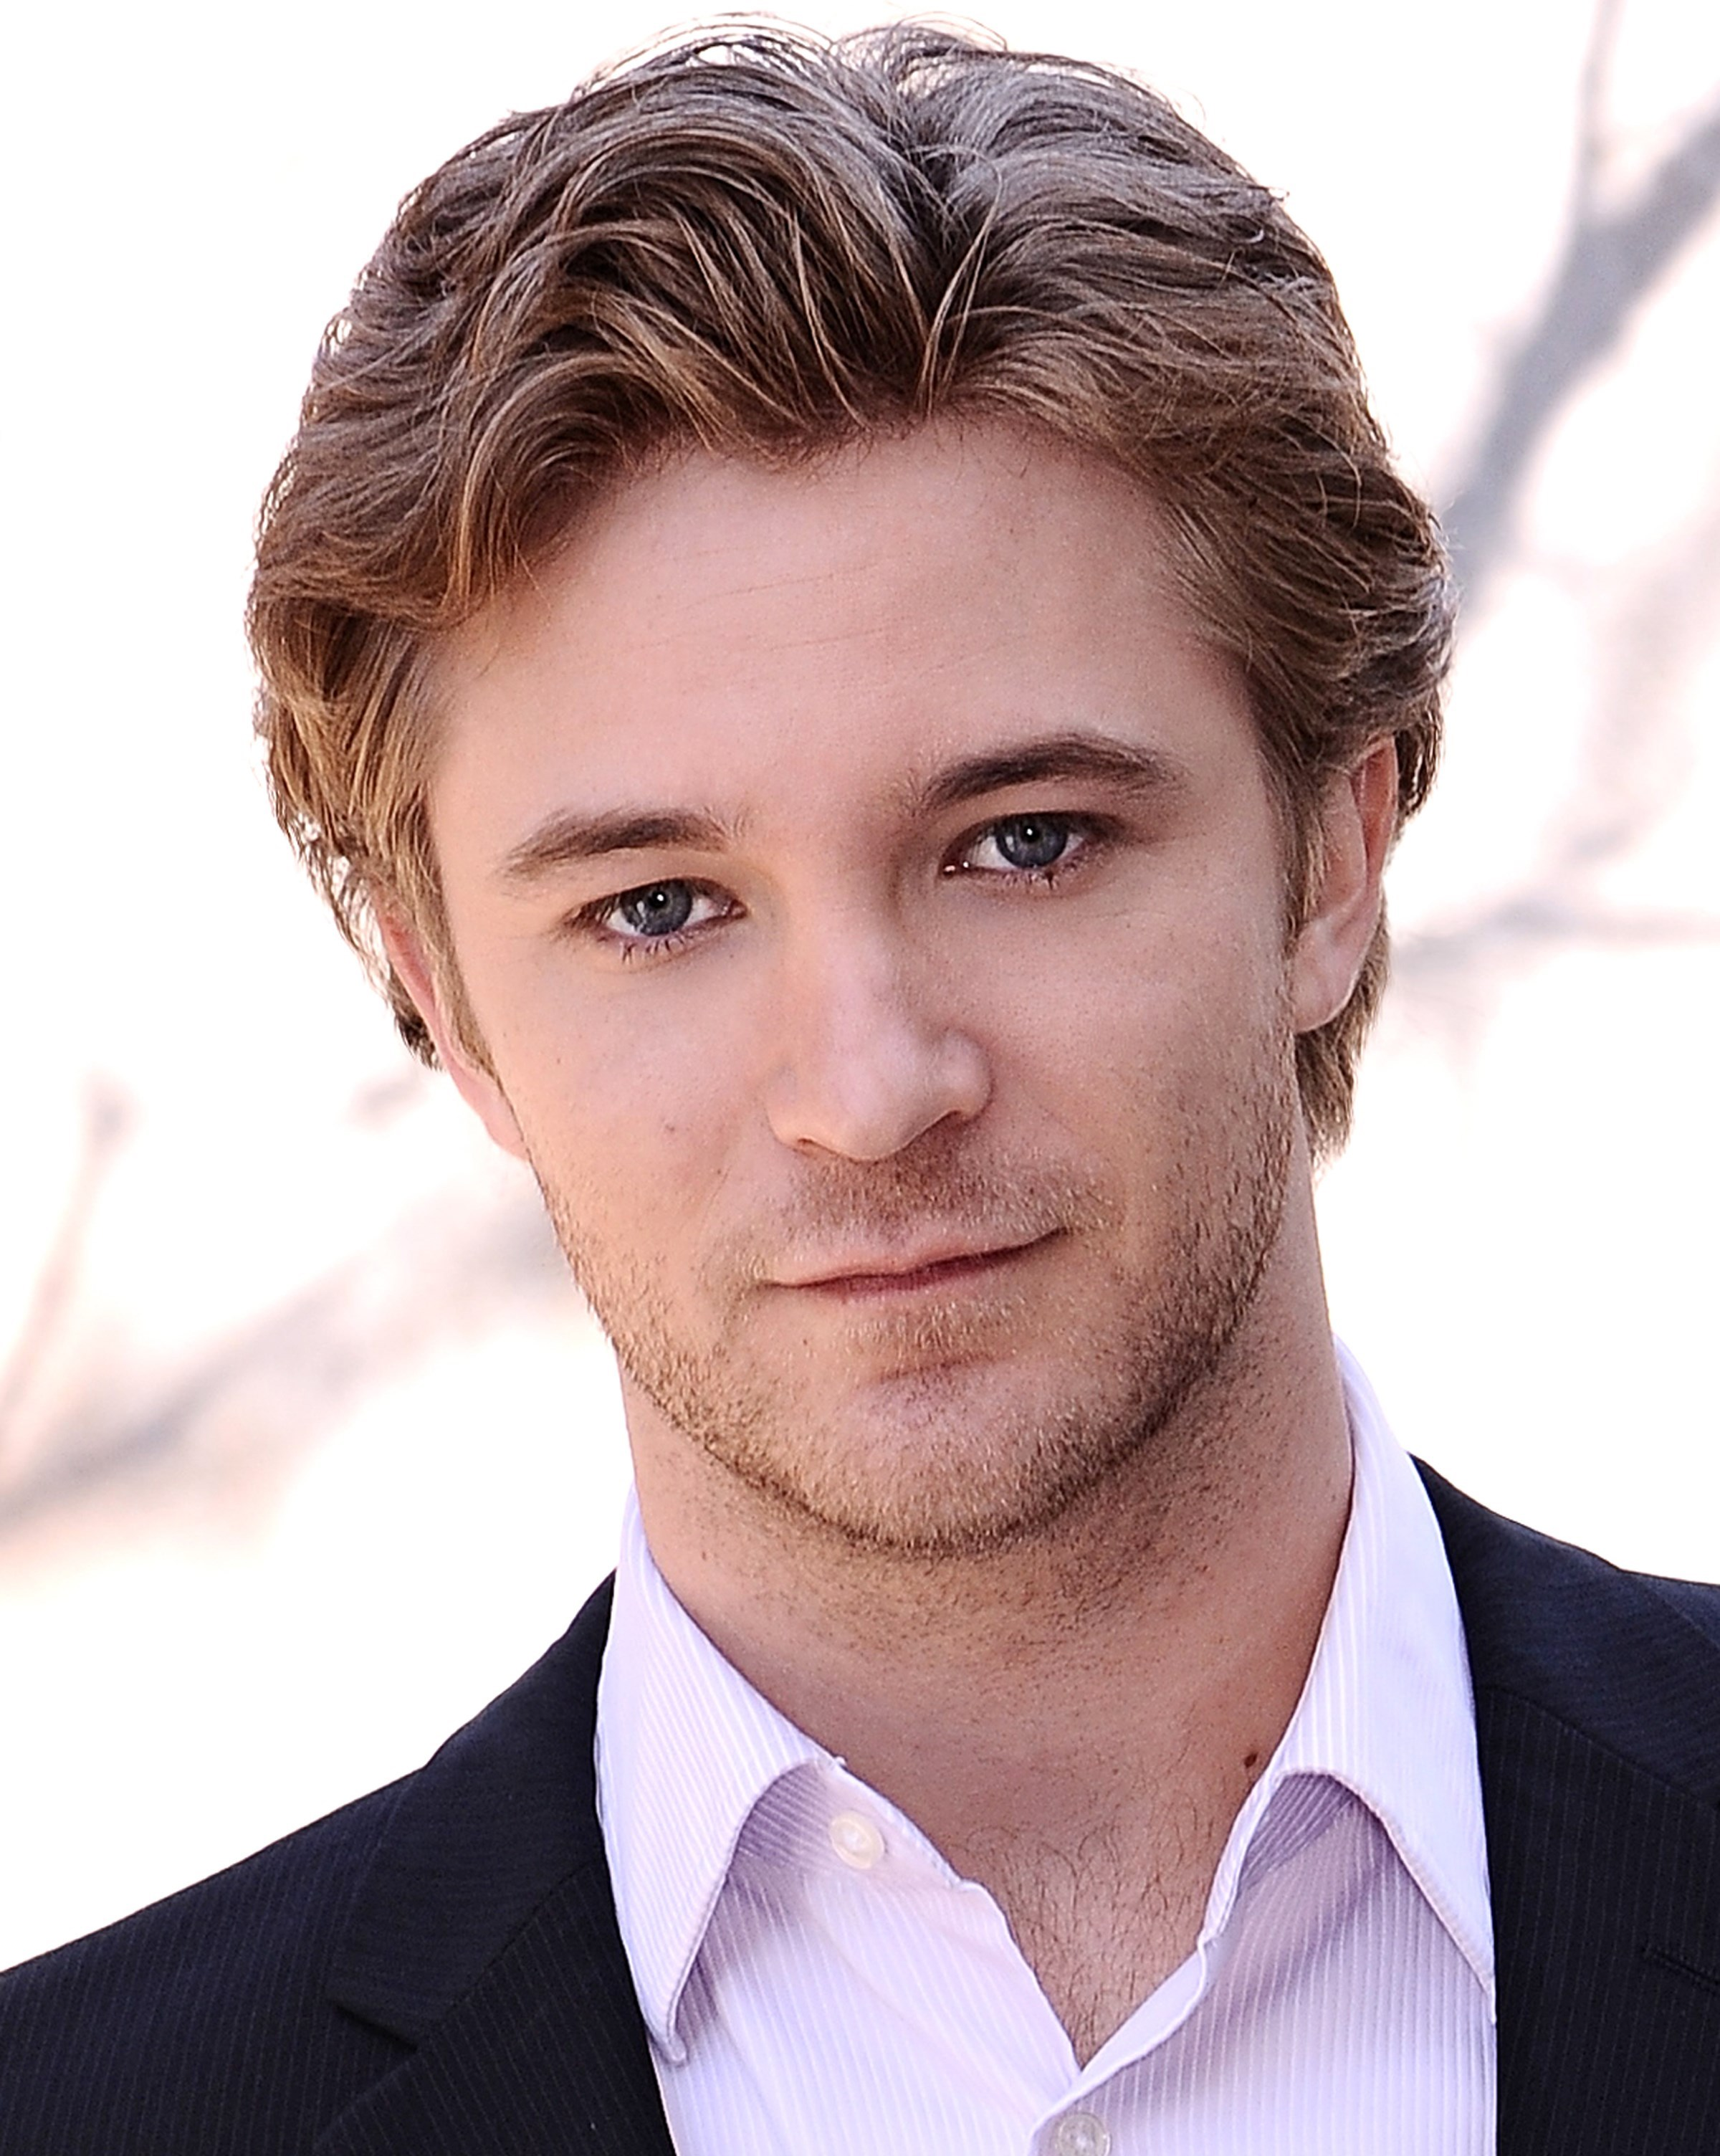 Michael Welch | Known people - famous people news and biographies